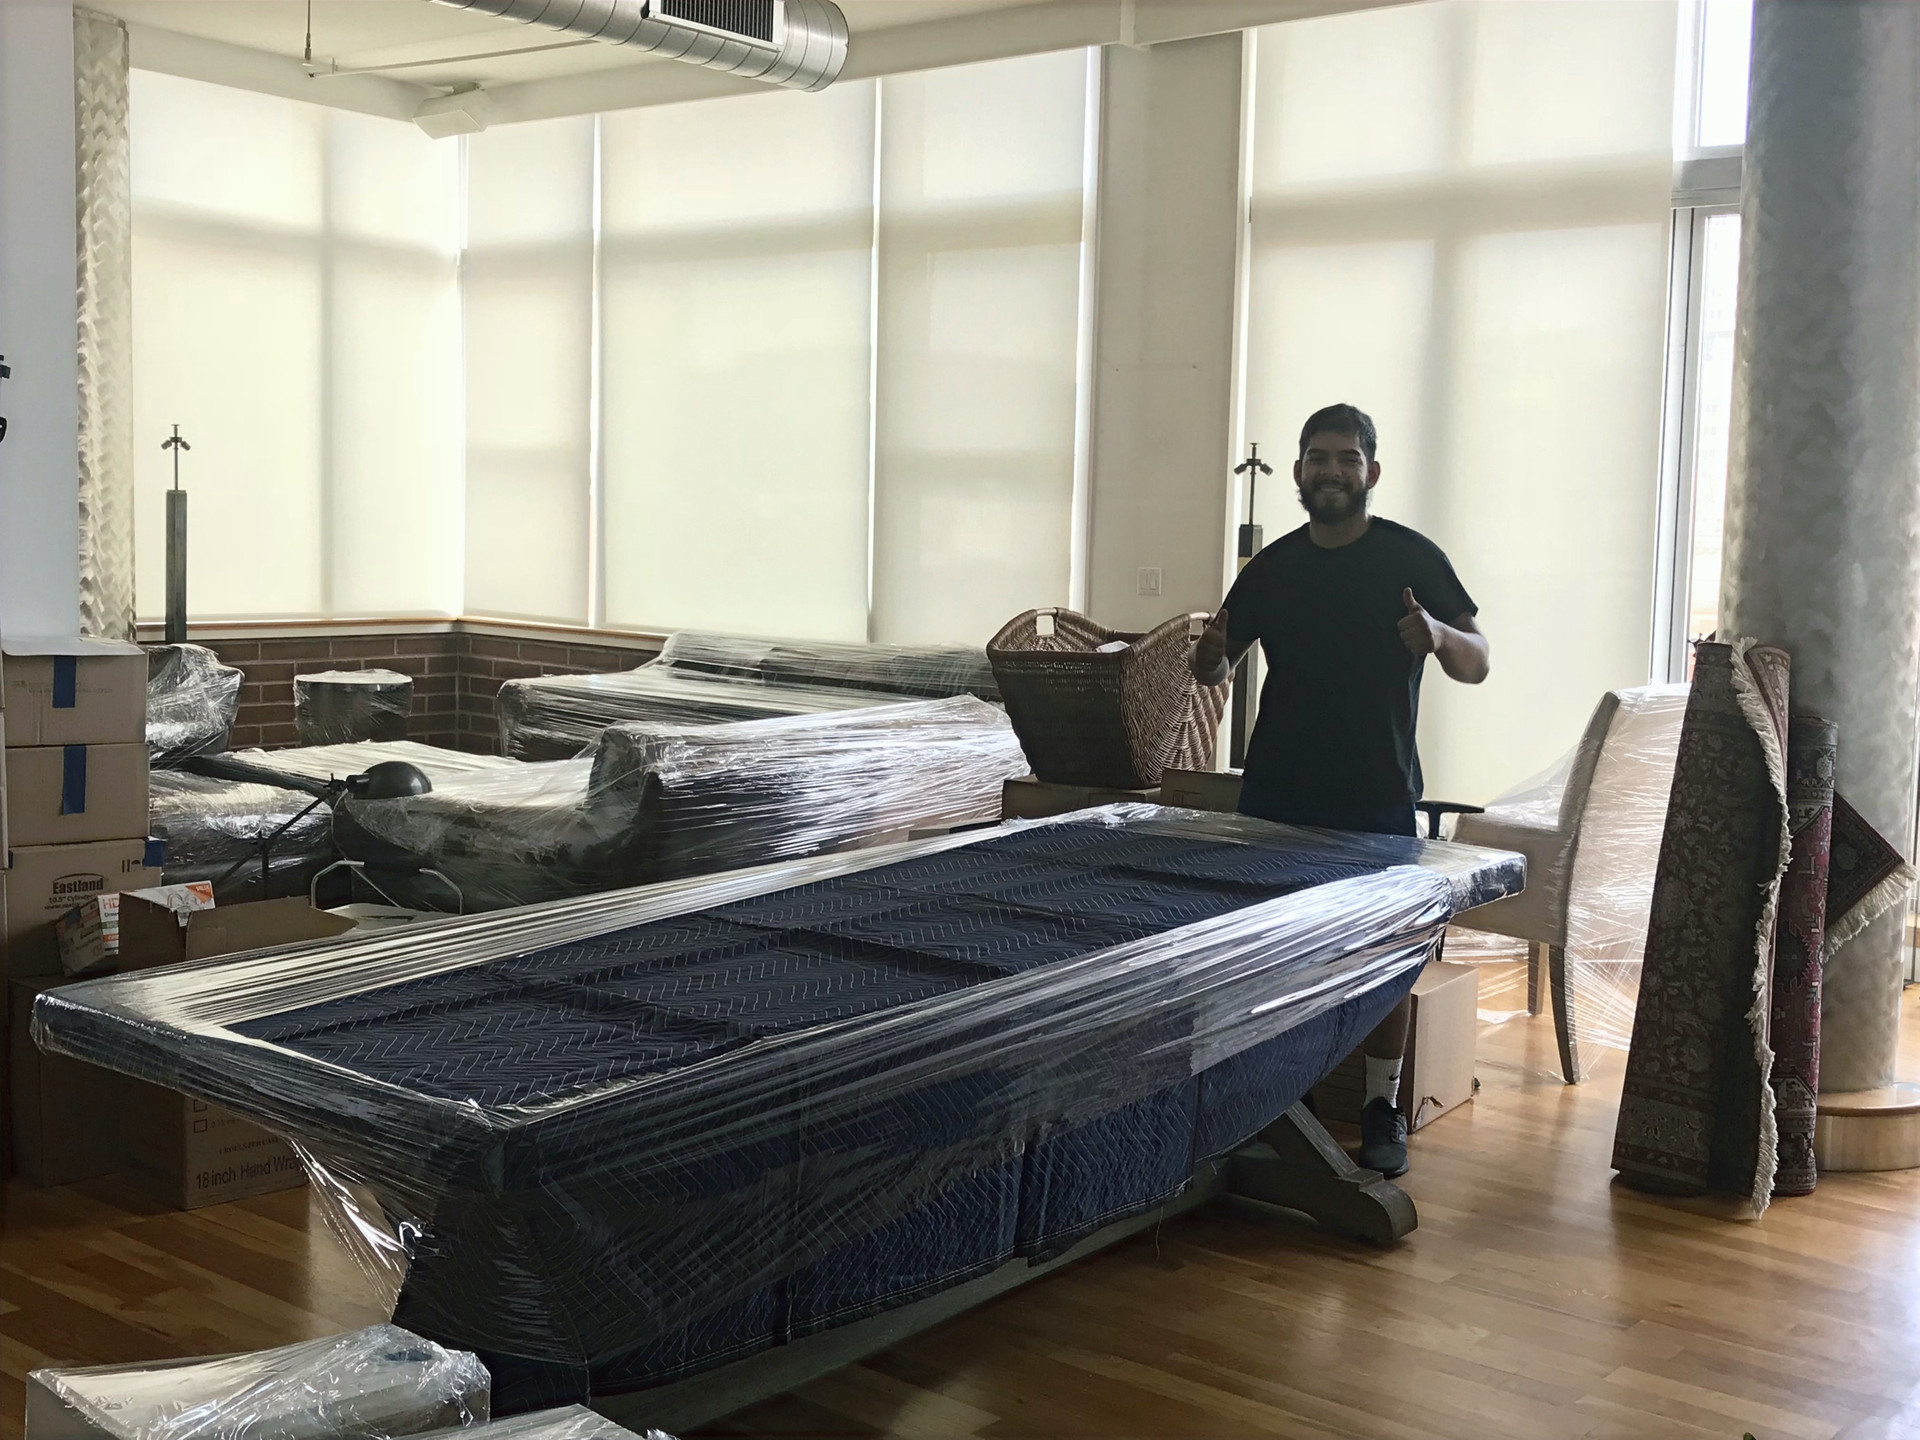 Prepping all furniture in Blankets and Plastic wrap before being moved